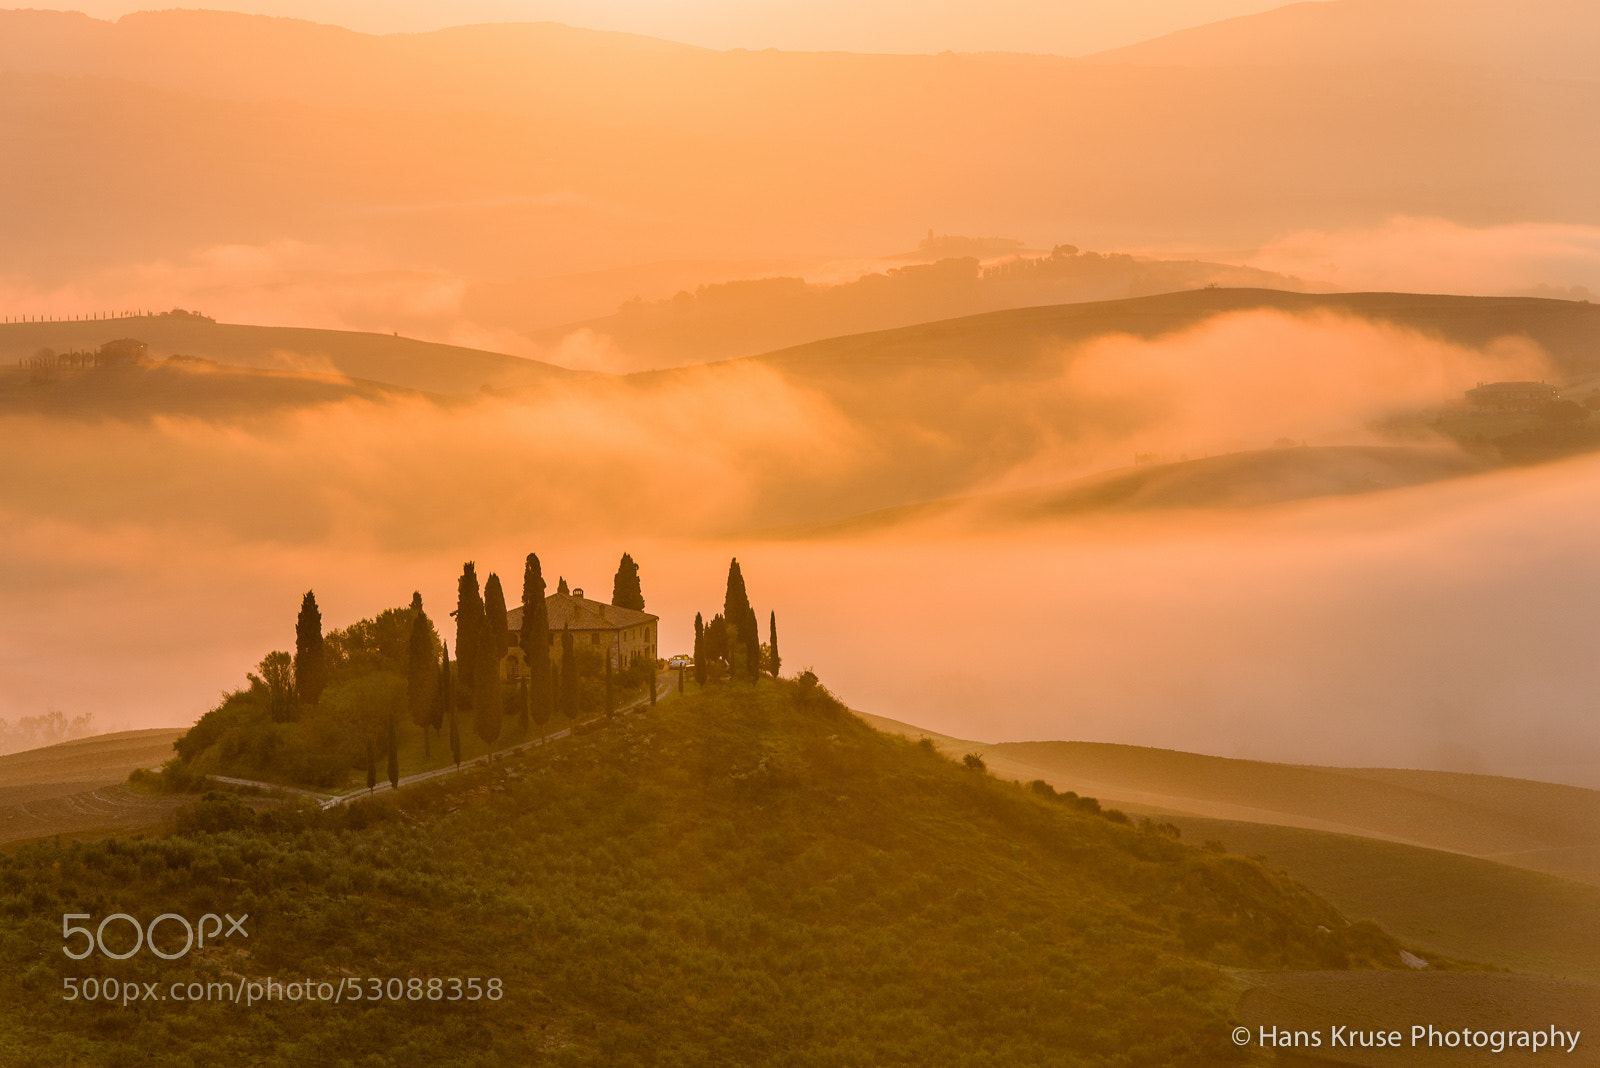 Photograph Tuscany morning with fog by Hans Kruse on 500px